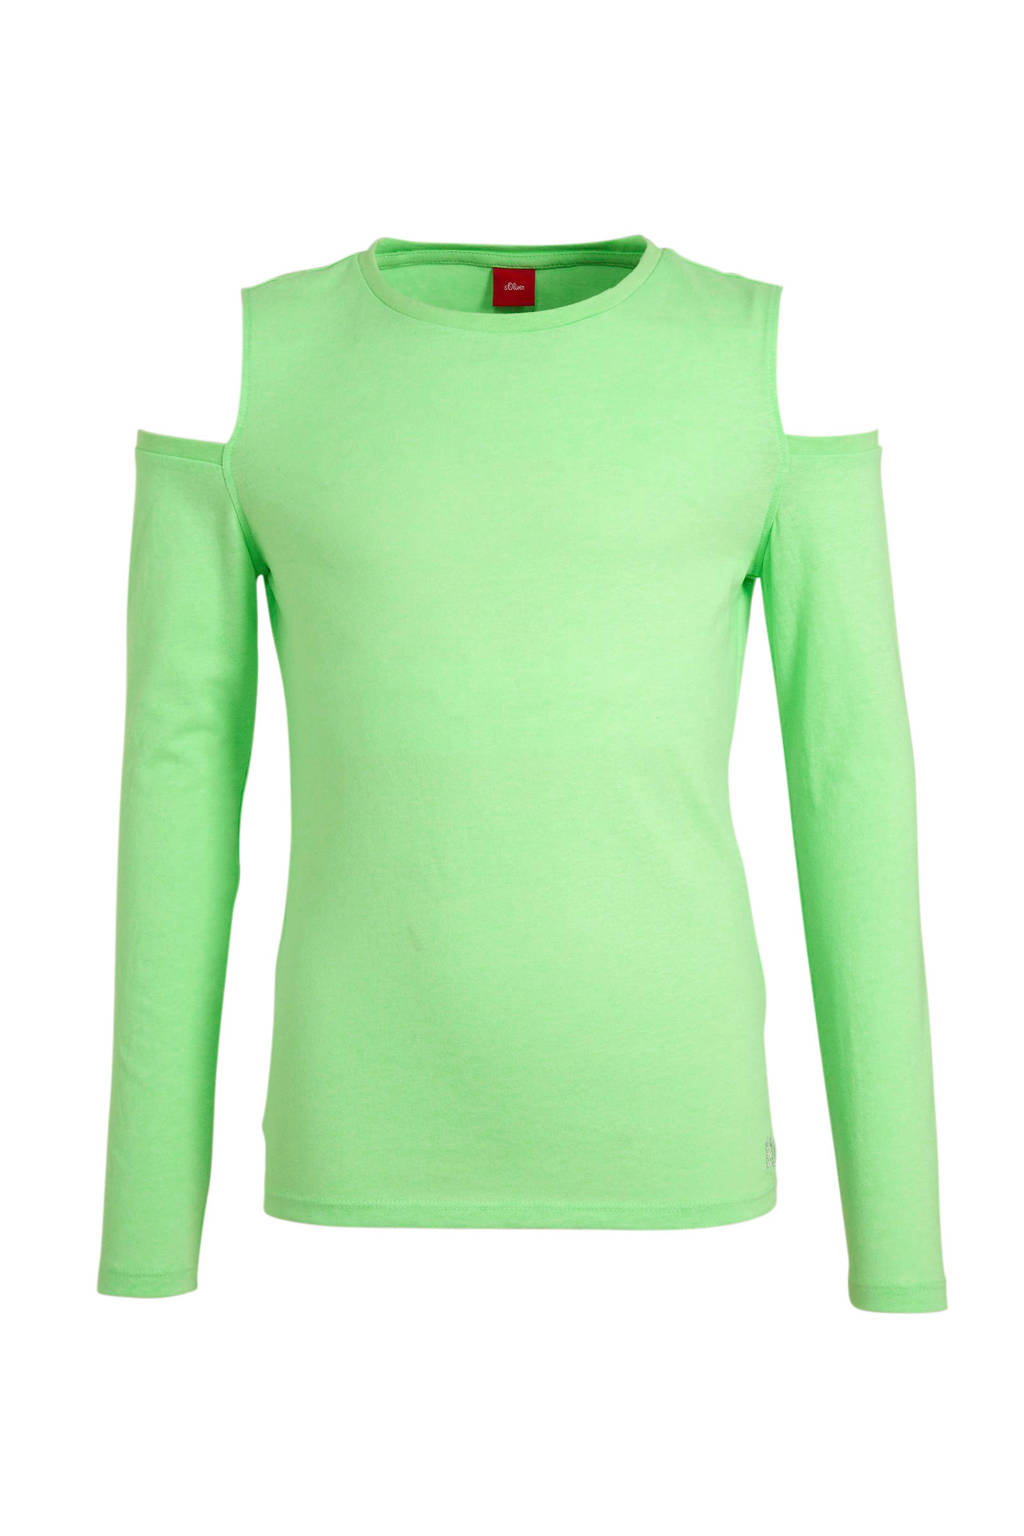 s.Oliver open shoulder top groen, Groen